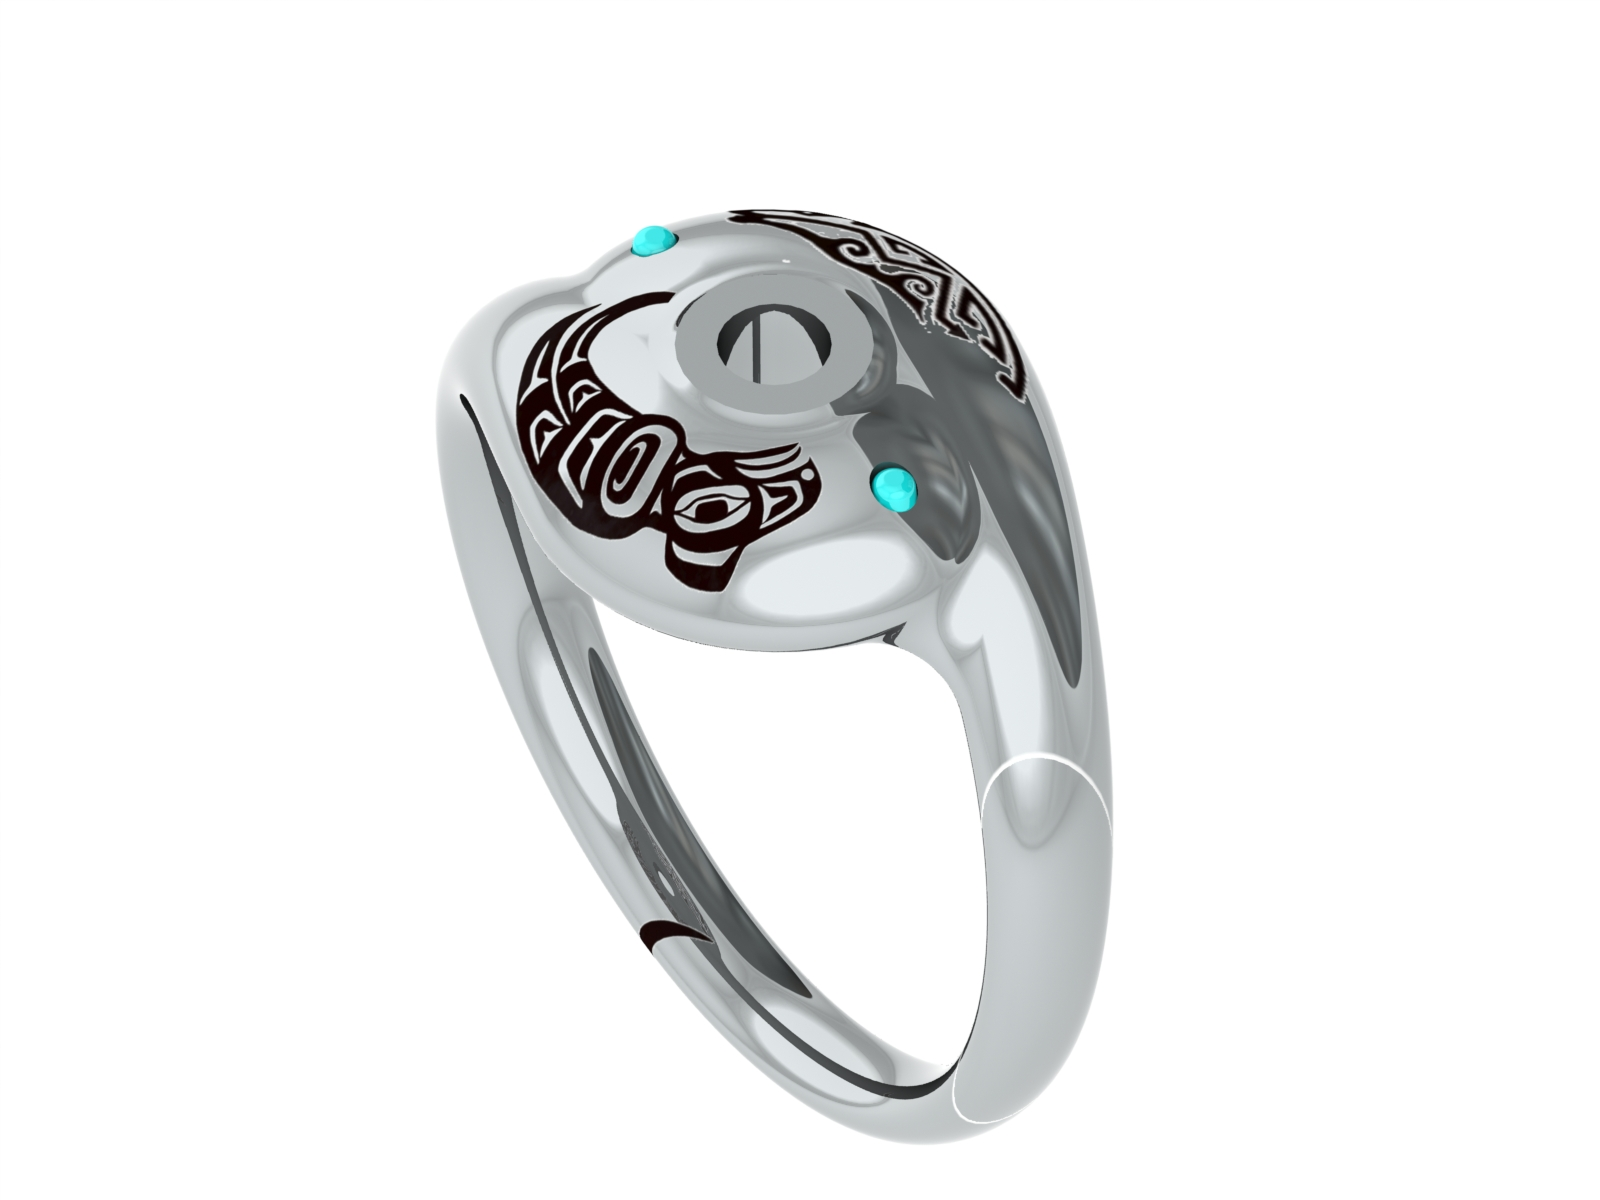 Final rendering of a ring to be 3D printed